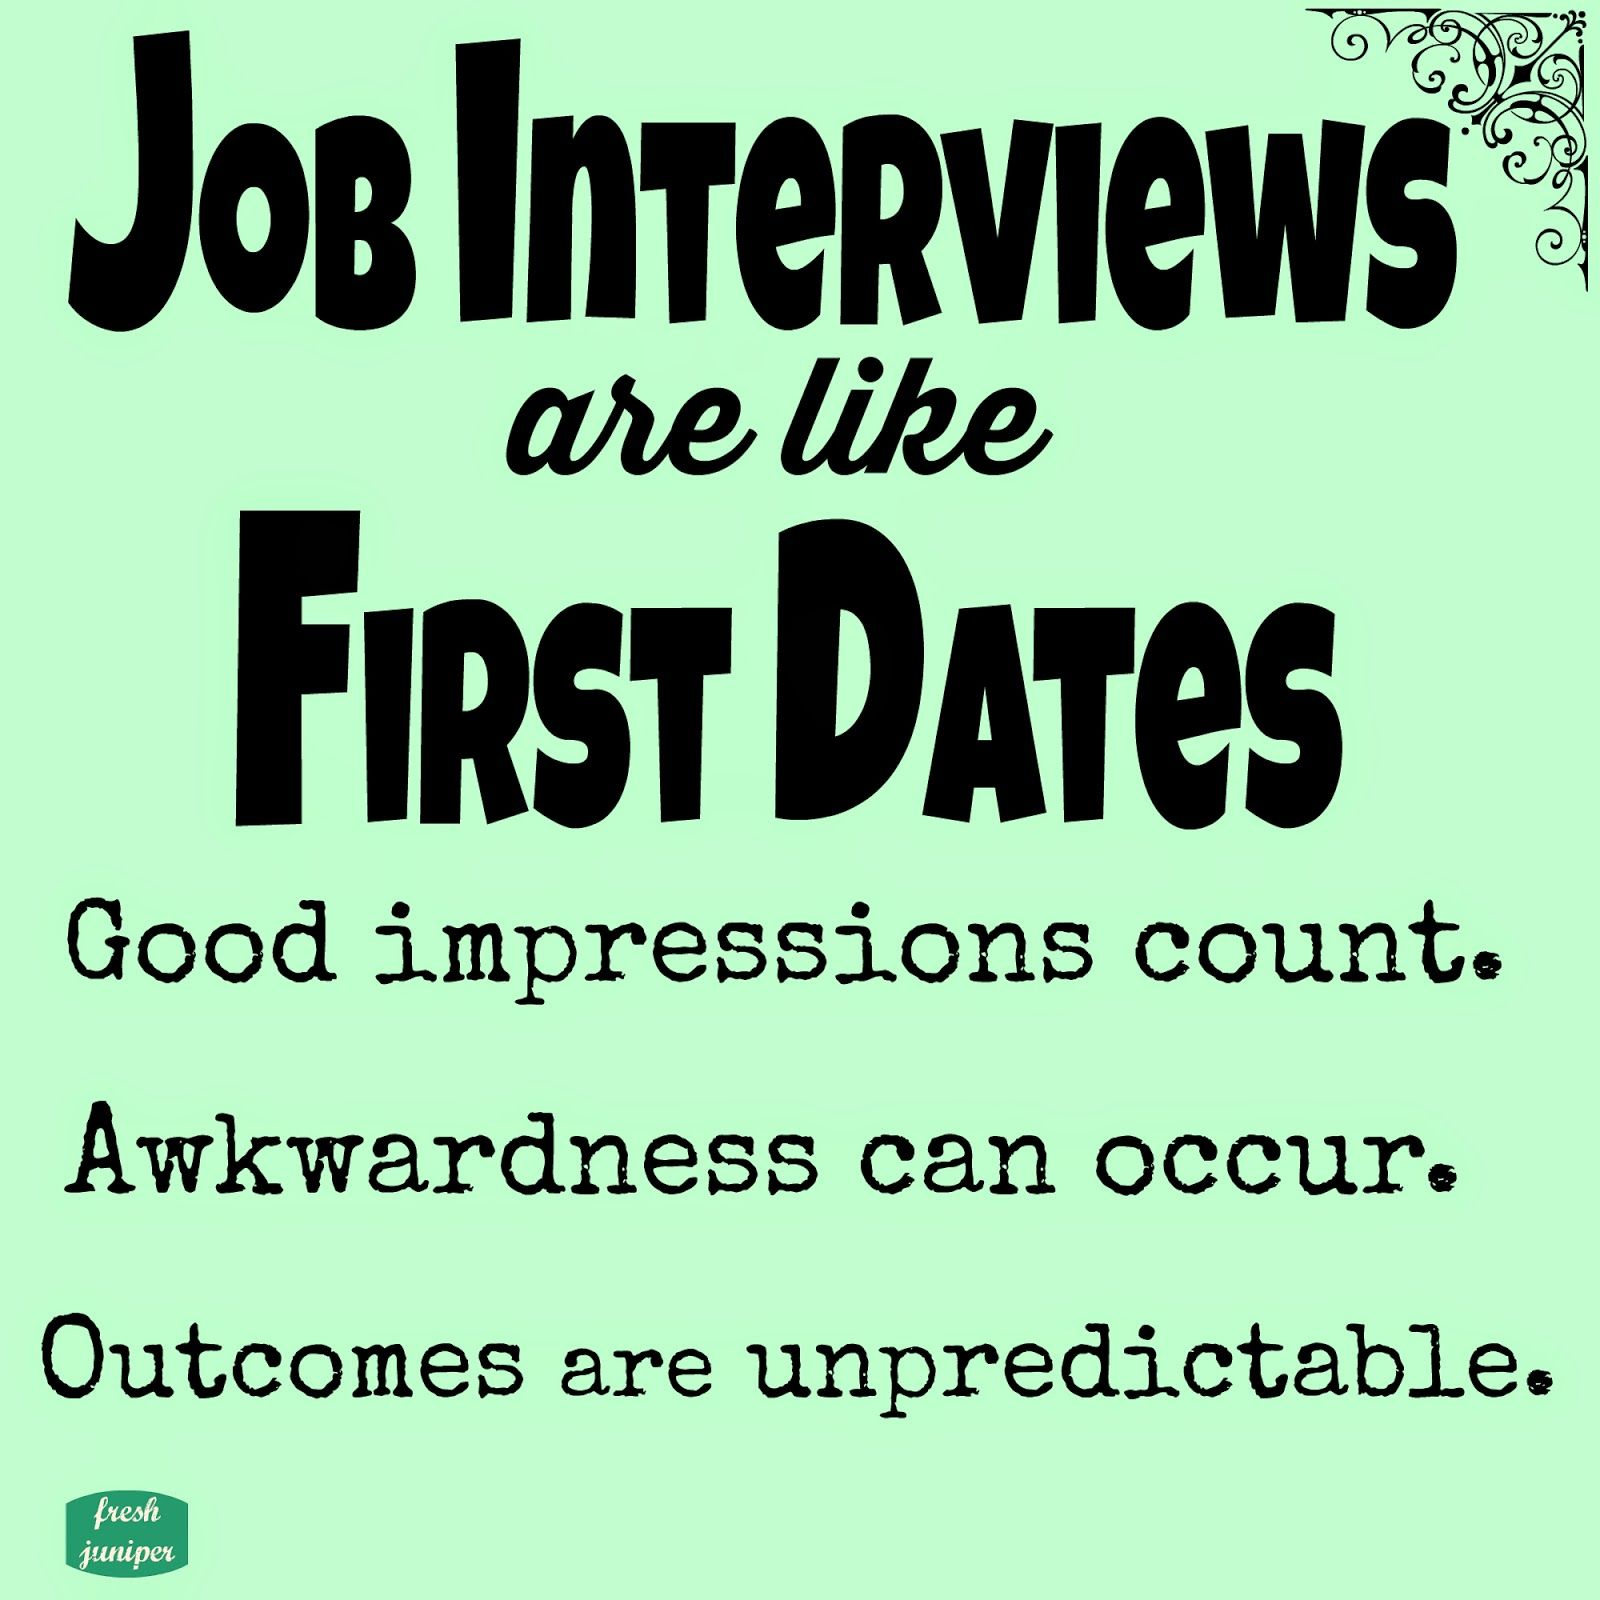 dating like a job interview Job interview : transition from temporary to full time you will get a lot of questions about the job, but you can expect things like teamwork and relationship.